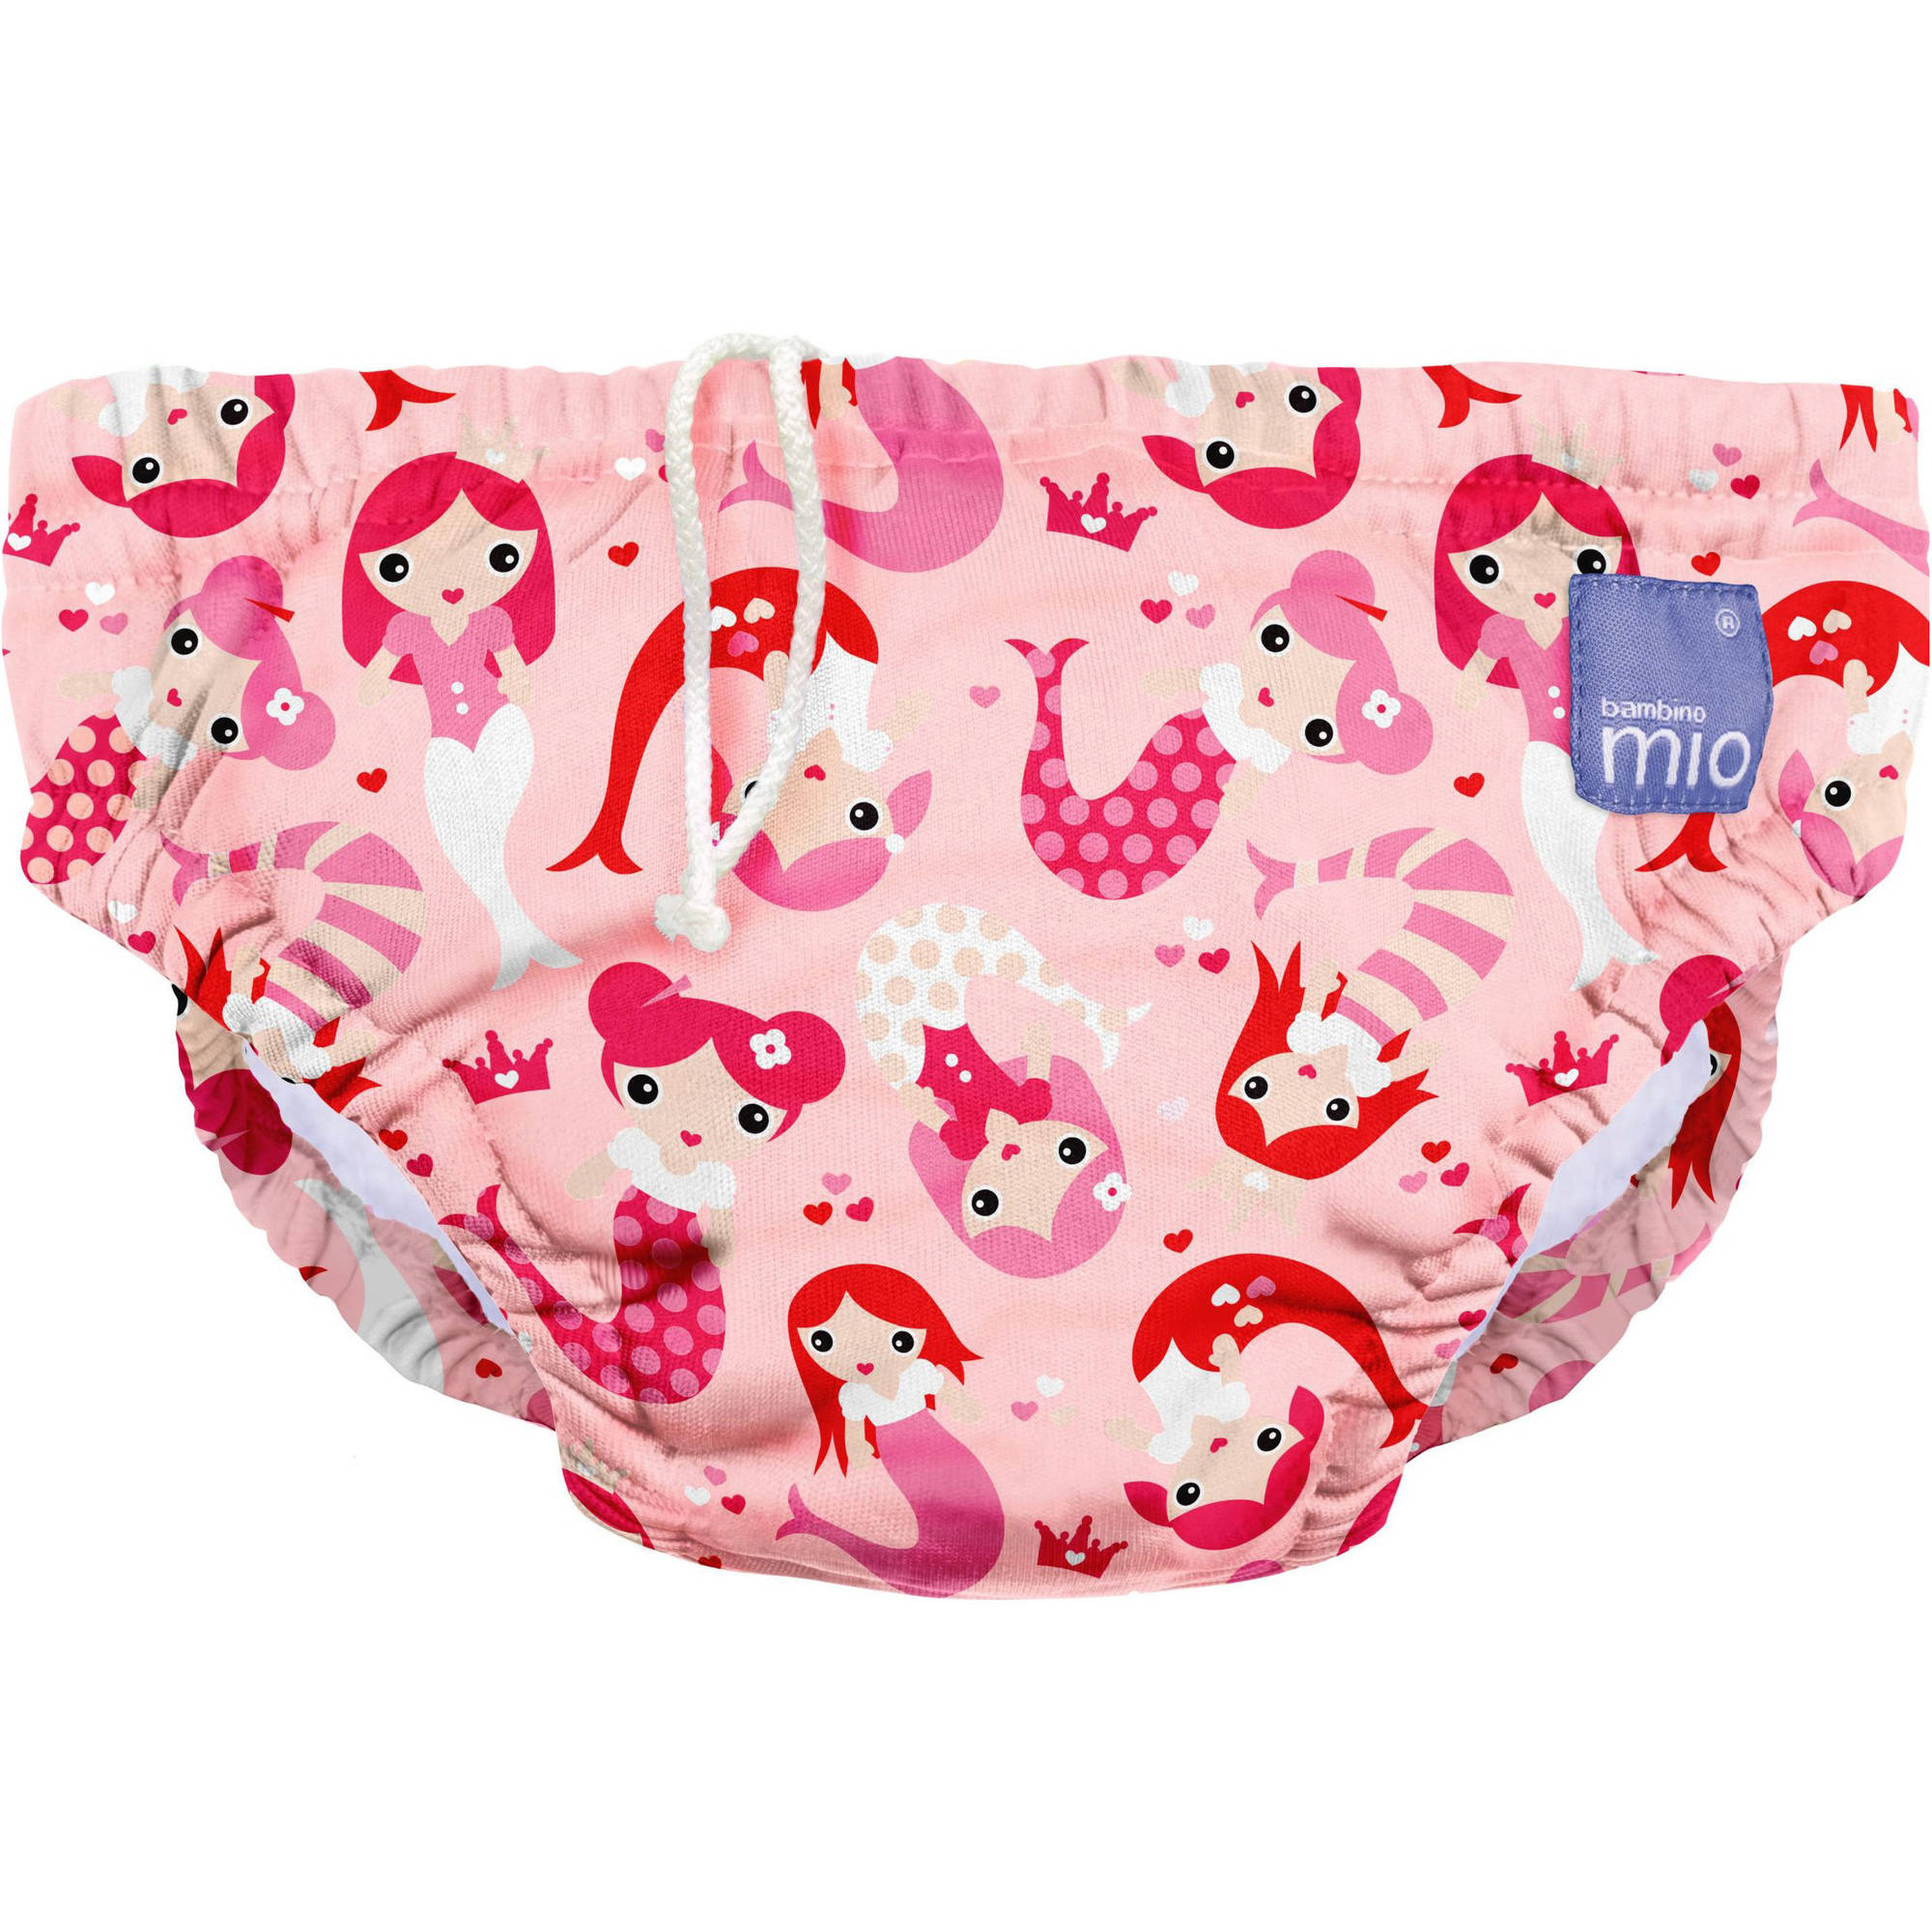 Bambino Mio Reusable Swim Diaper, Mermaid, (Choose Your Size)